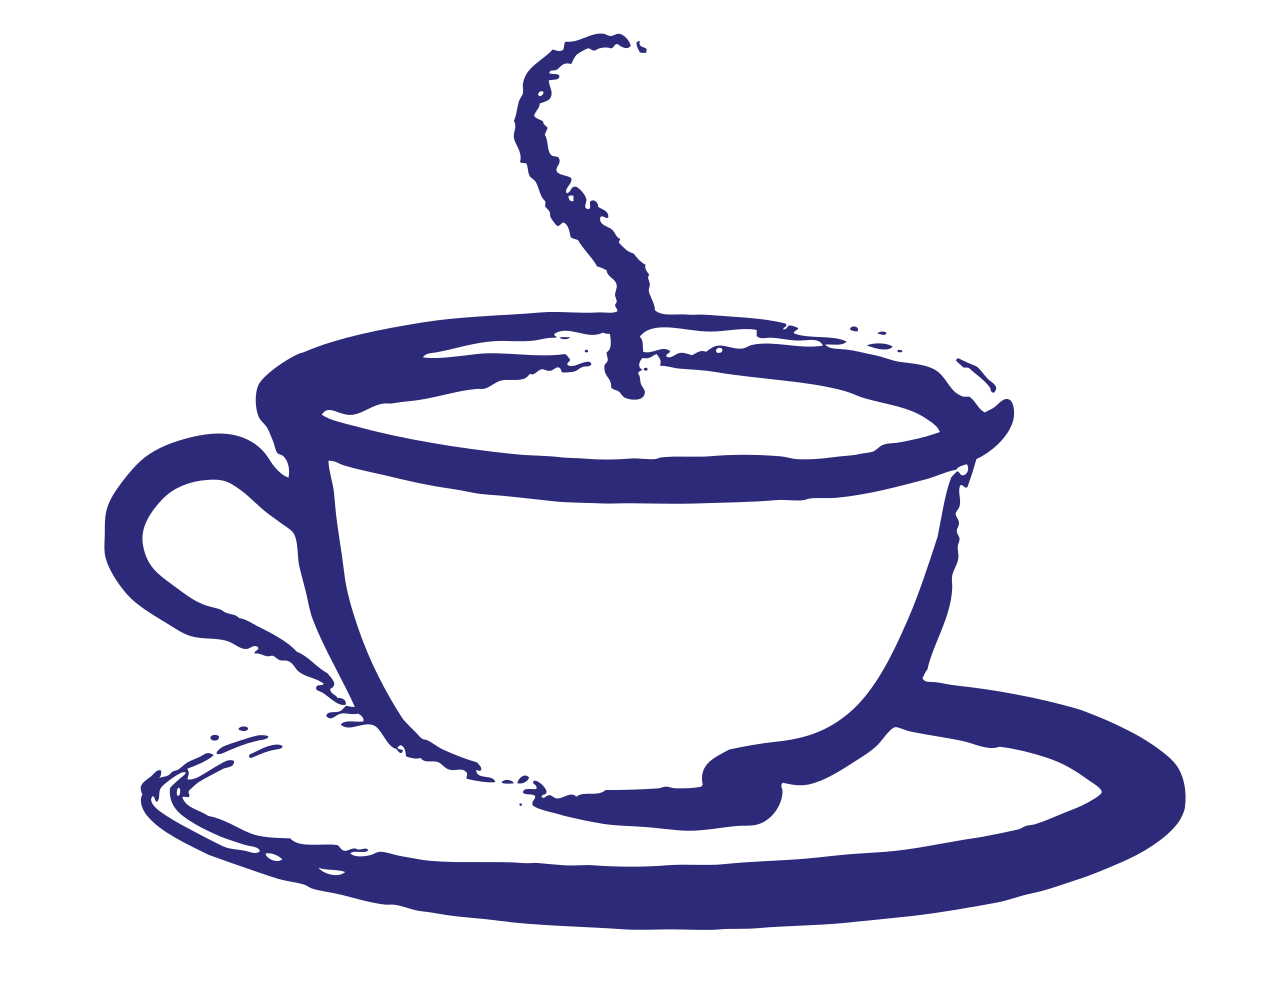 Tea Cup clipart #12, Download drawings